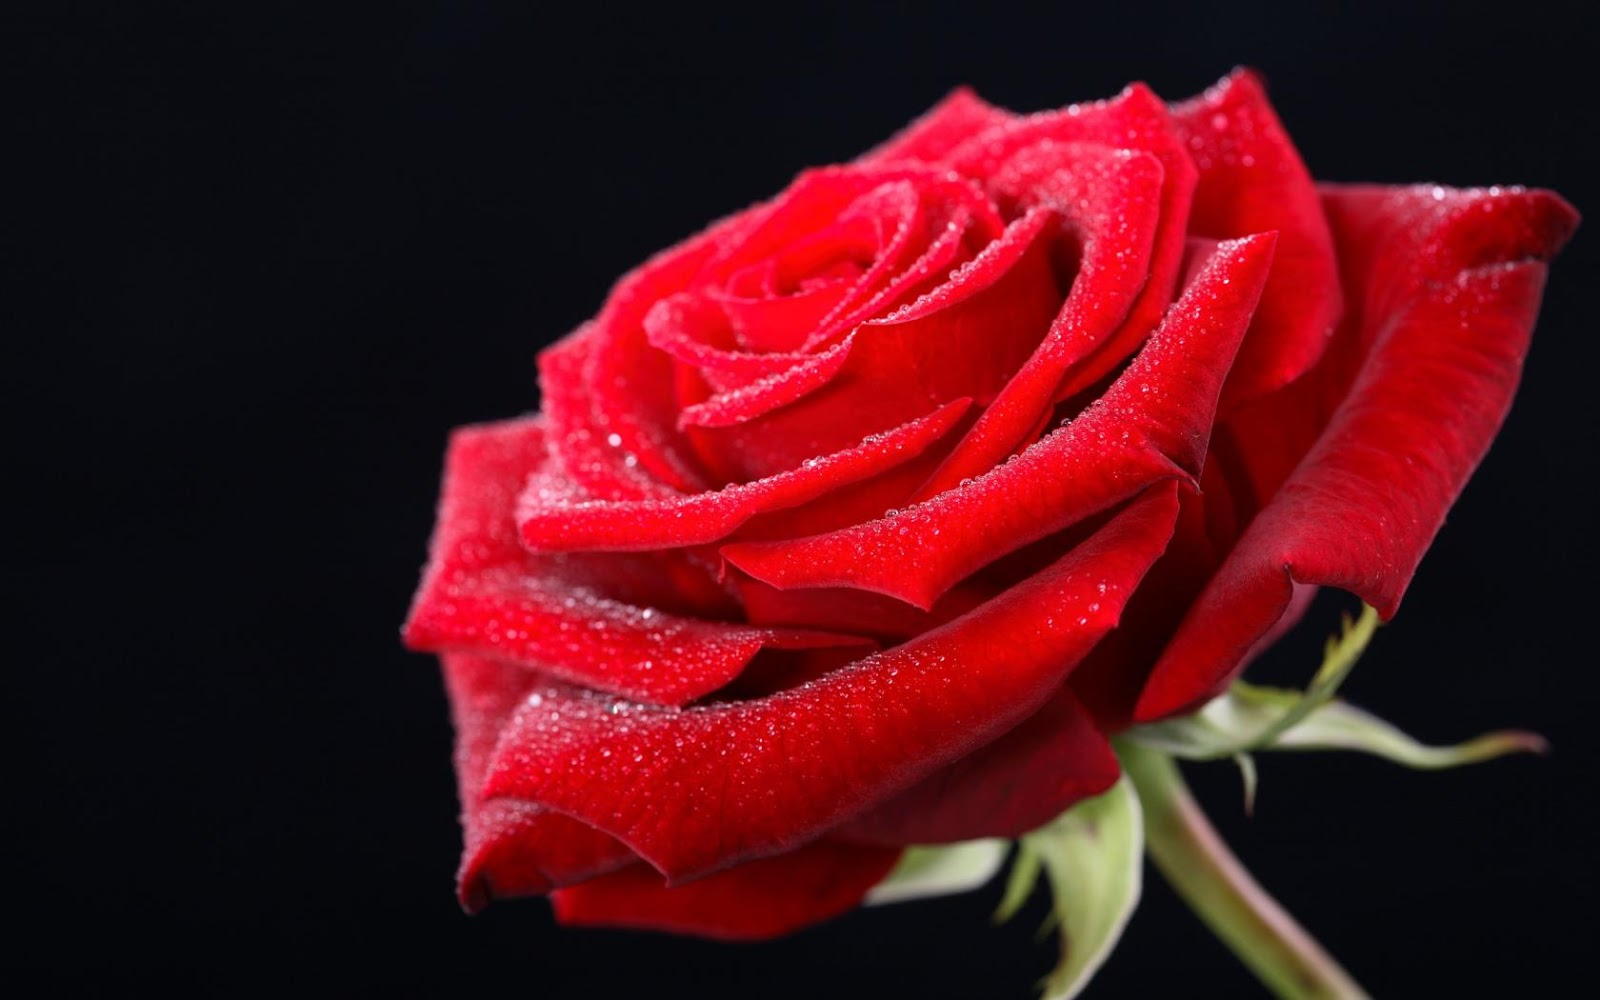 Red rose HD wallpaper on valentines day 2016